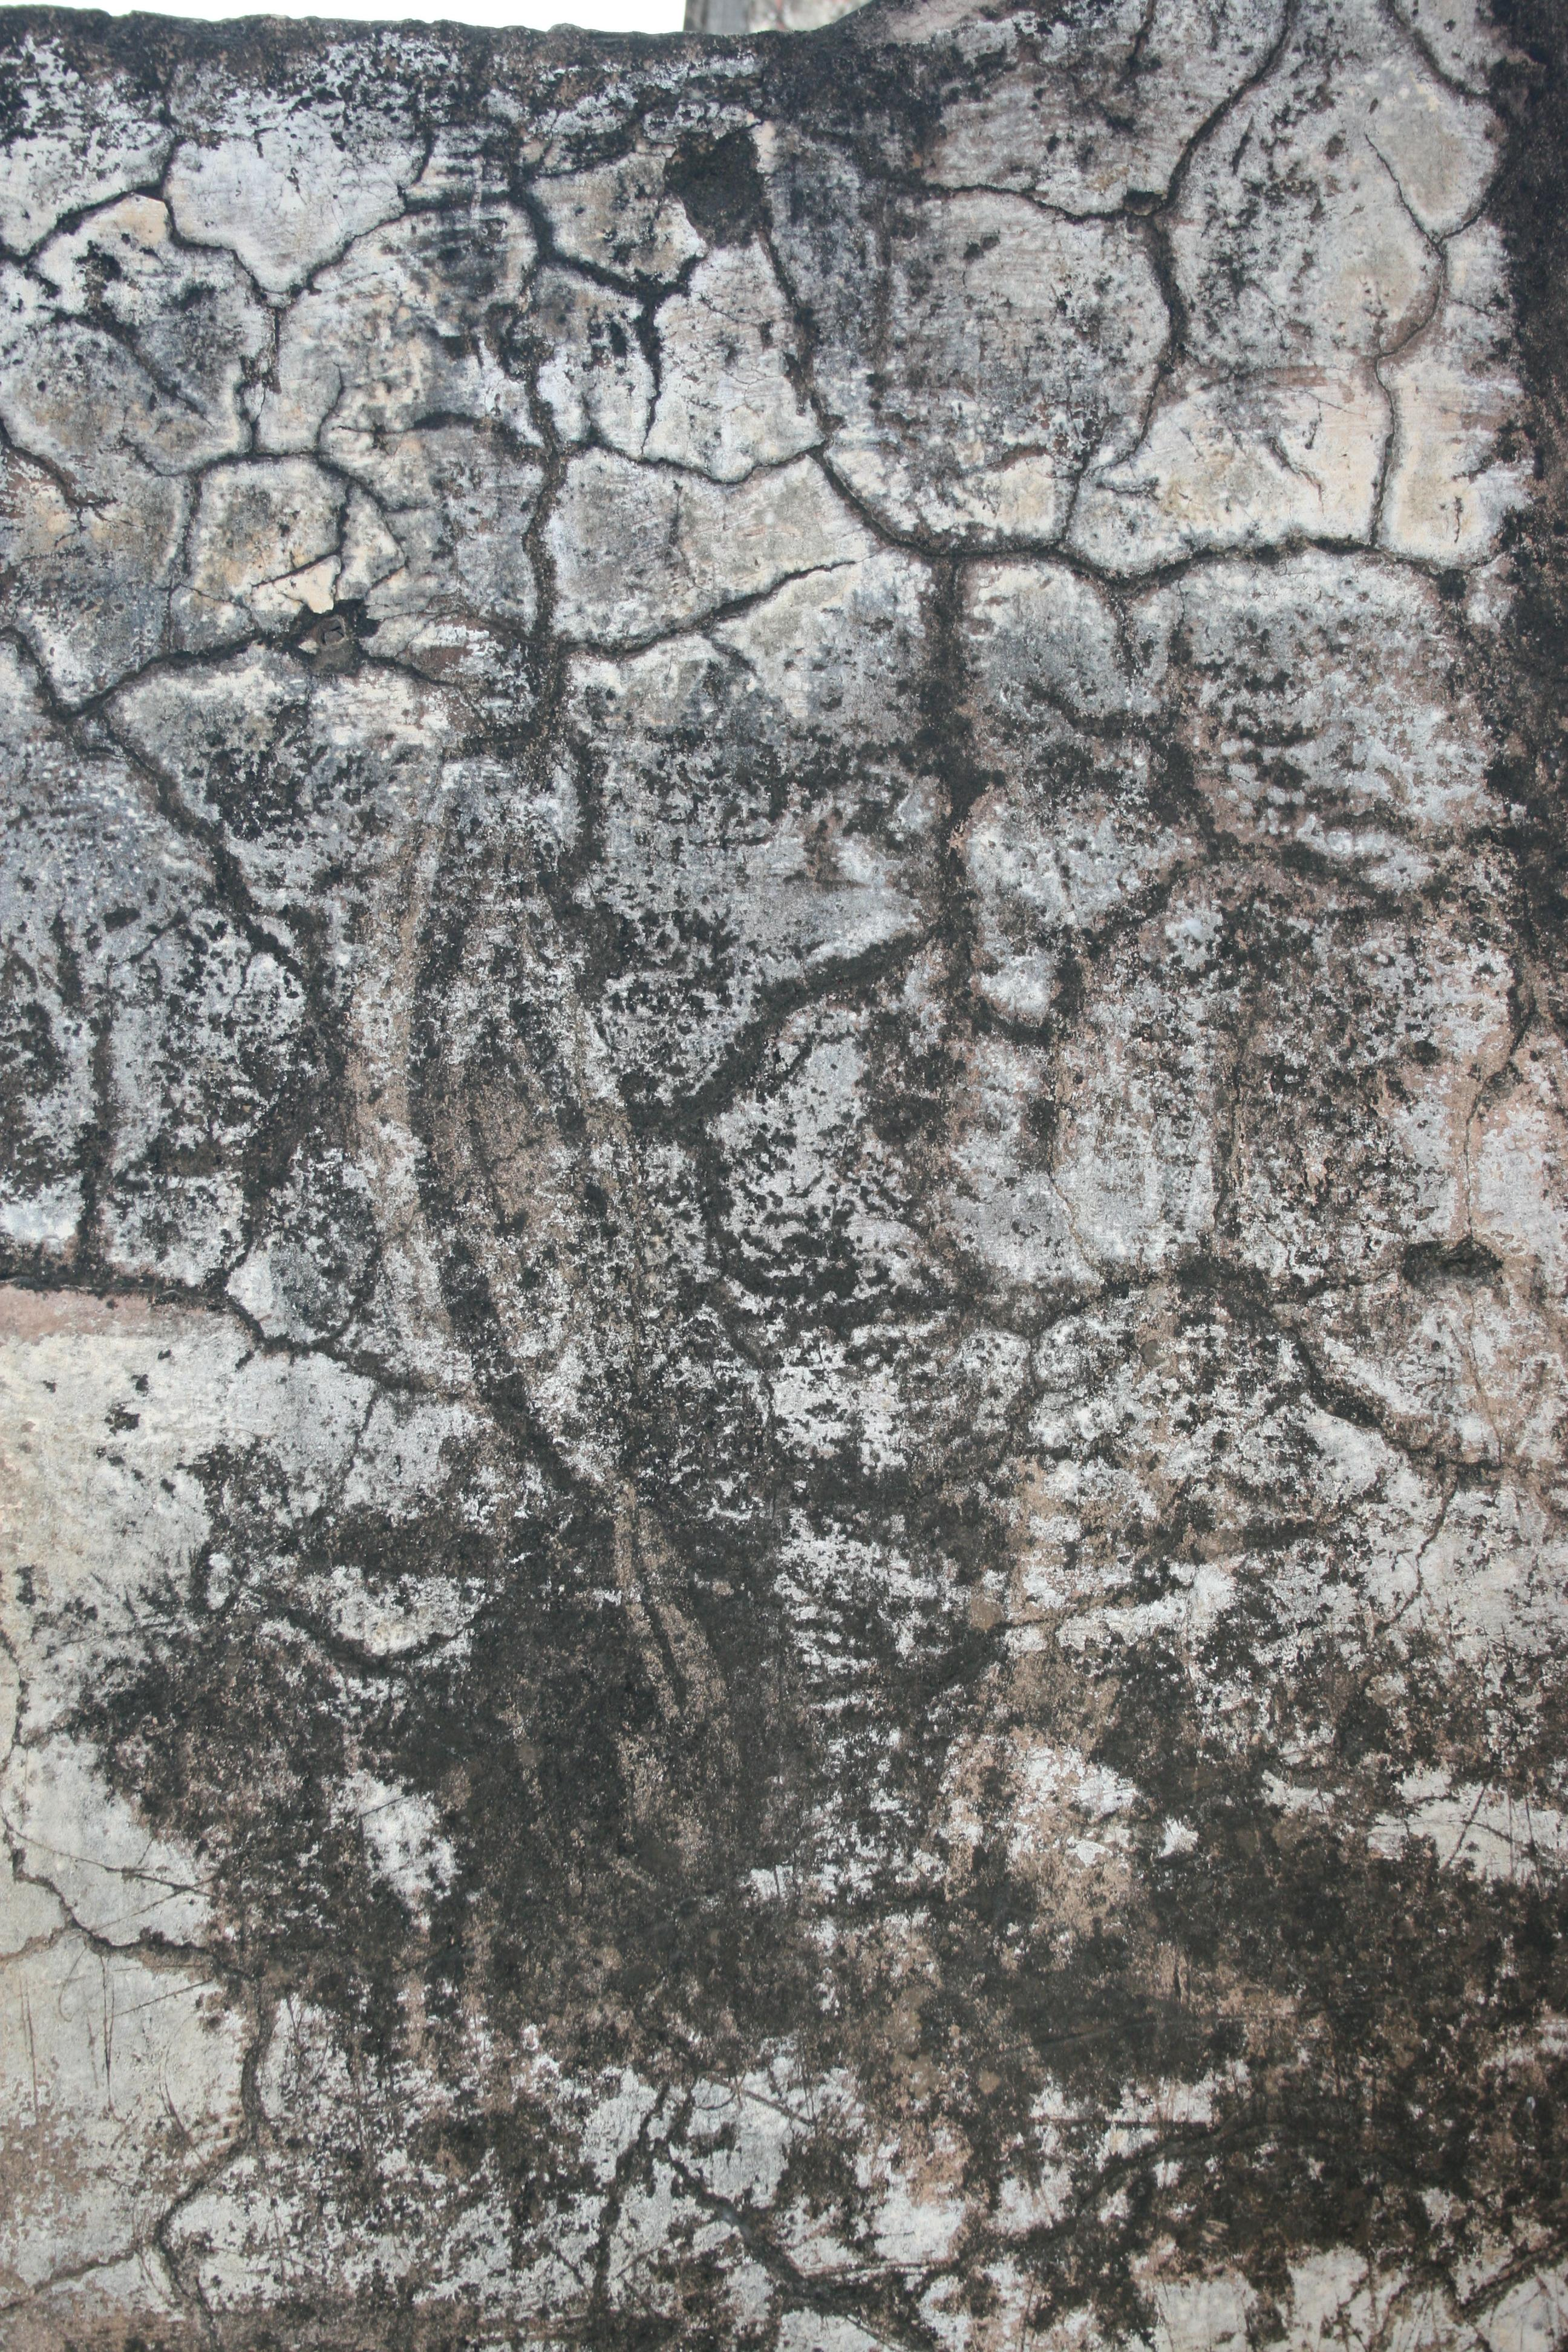 Natural Aging of the Stone Temple Wall